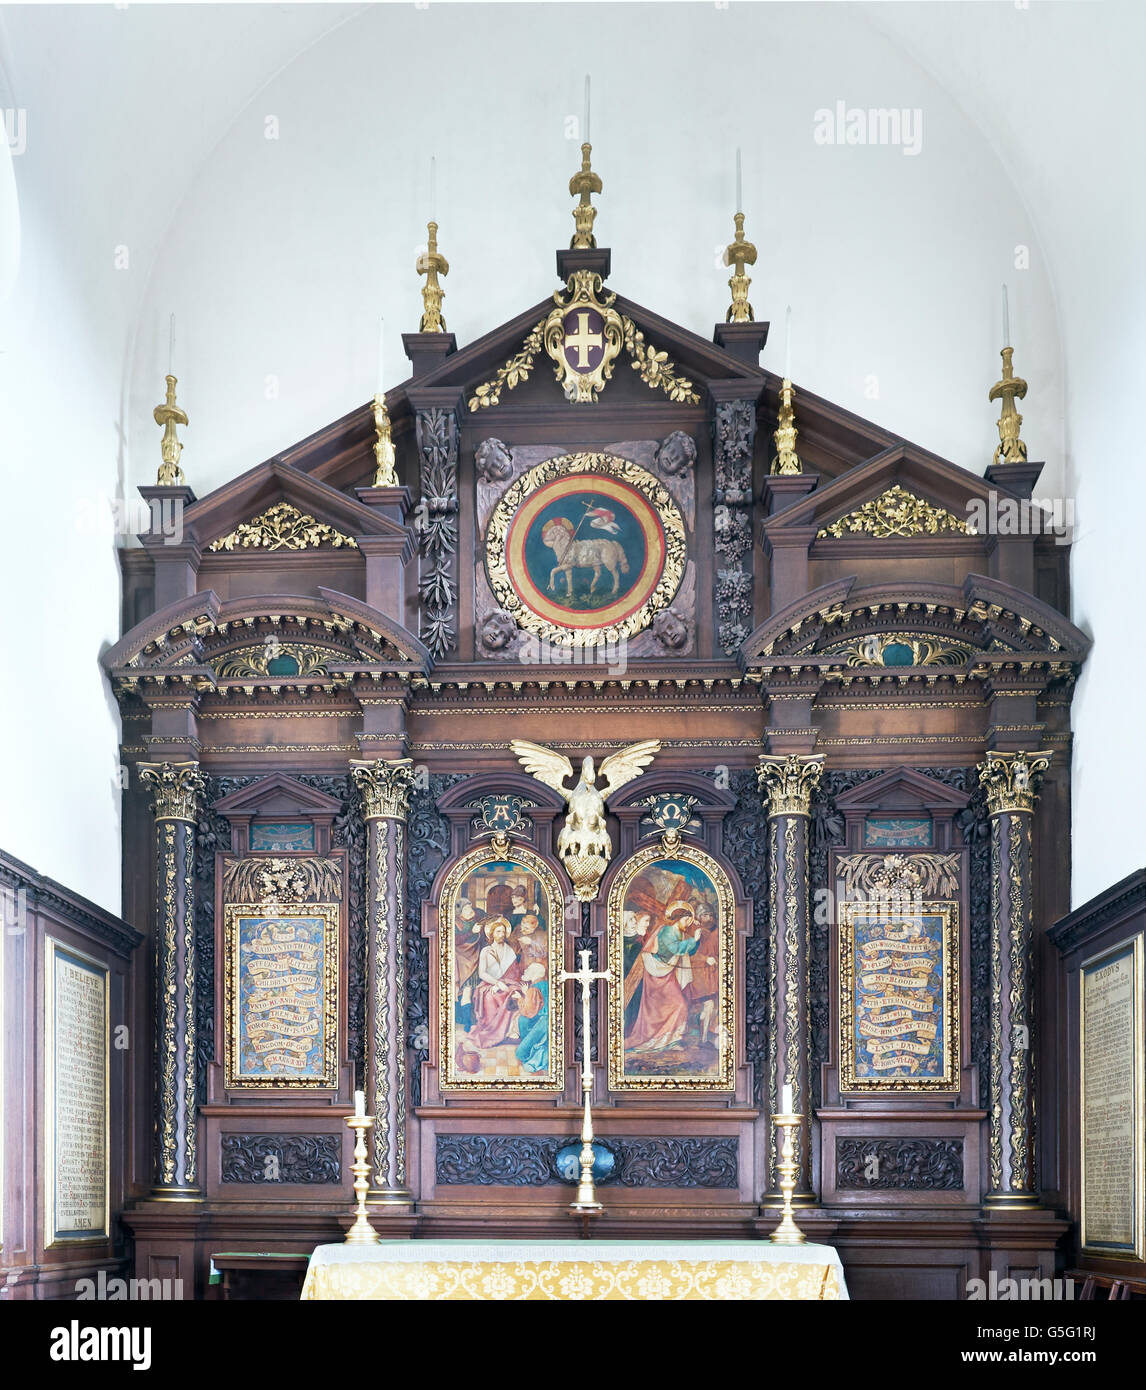 All Hallows Twickenham, formerly All Hallows Lombard Street: the Reredos - Stock Image